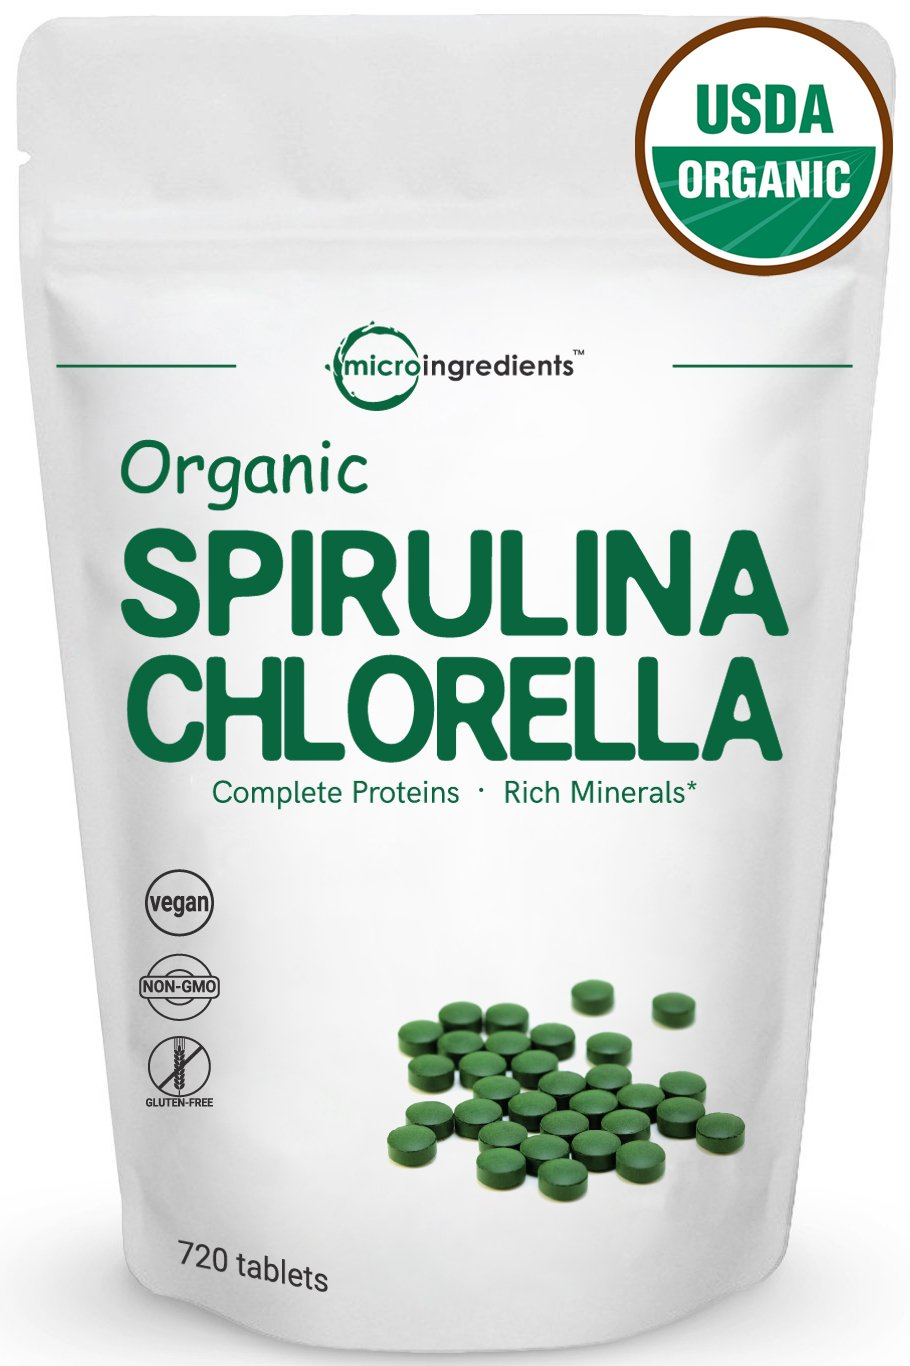 Organic Chlorella & Spirulina 3000mg, 720 Tablets, 120 Servings, Best Superfood for Antioxidant, Prebiotics, Chlorophyll, Amino Acids, Fiber & Proteins, Non-GMO & Vegan Friendly